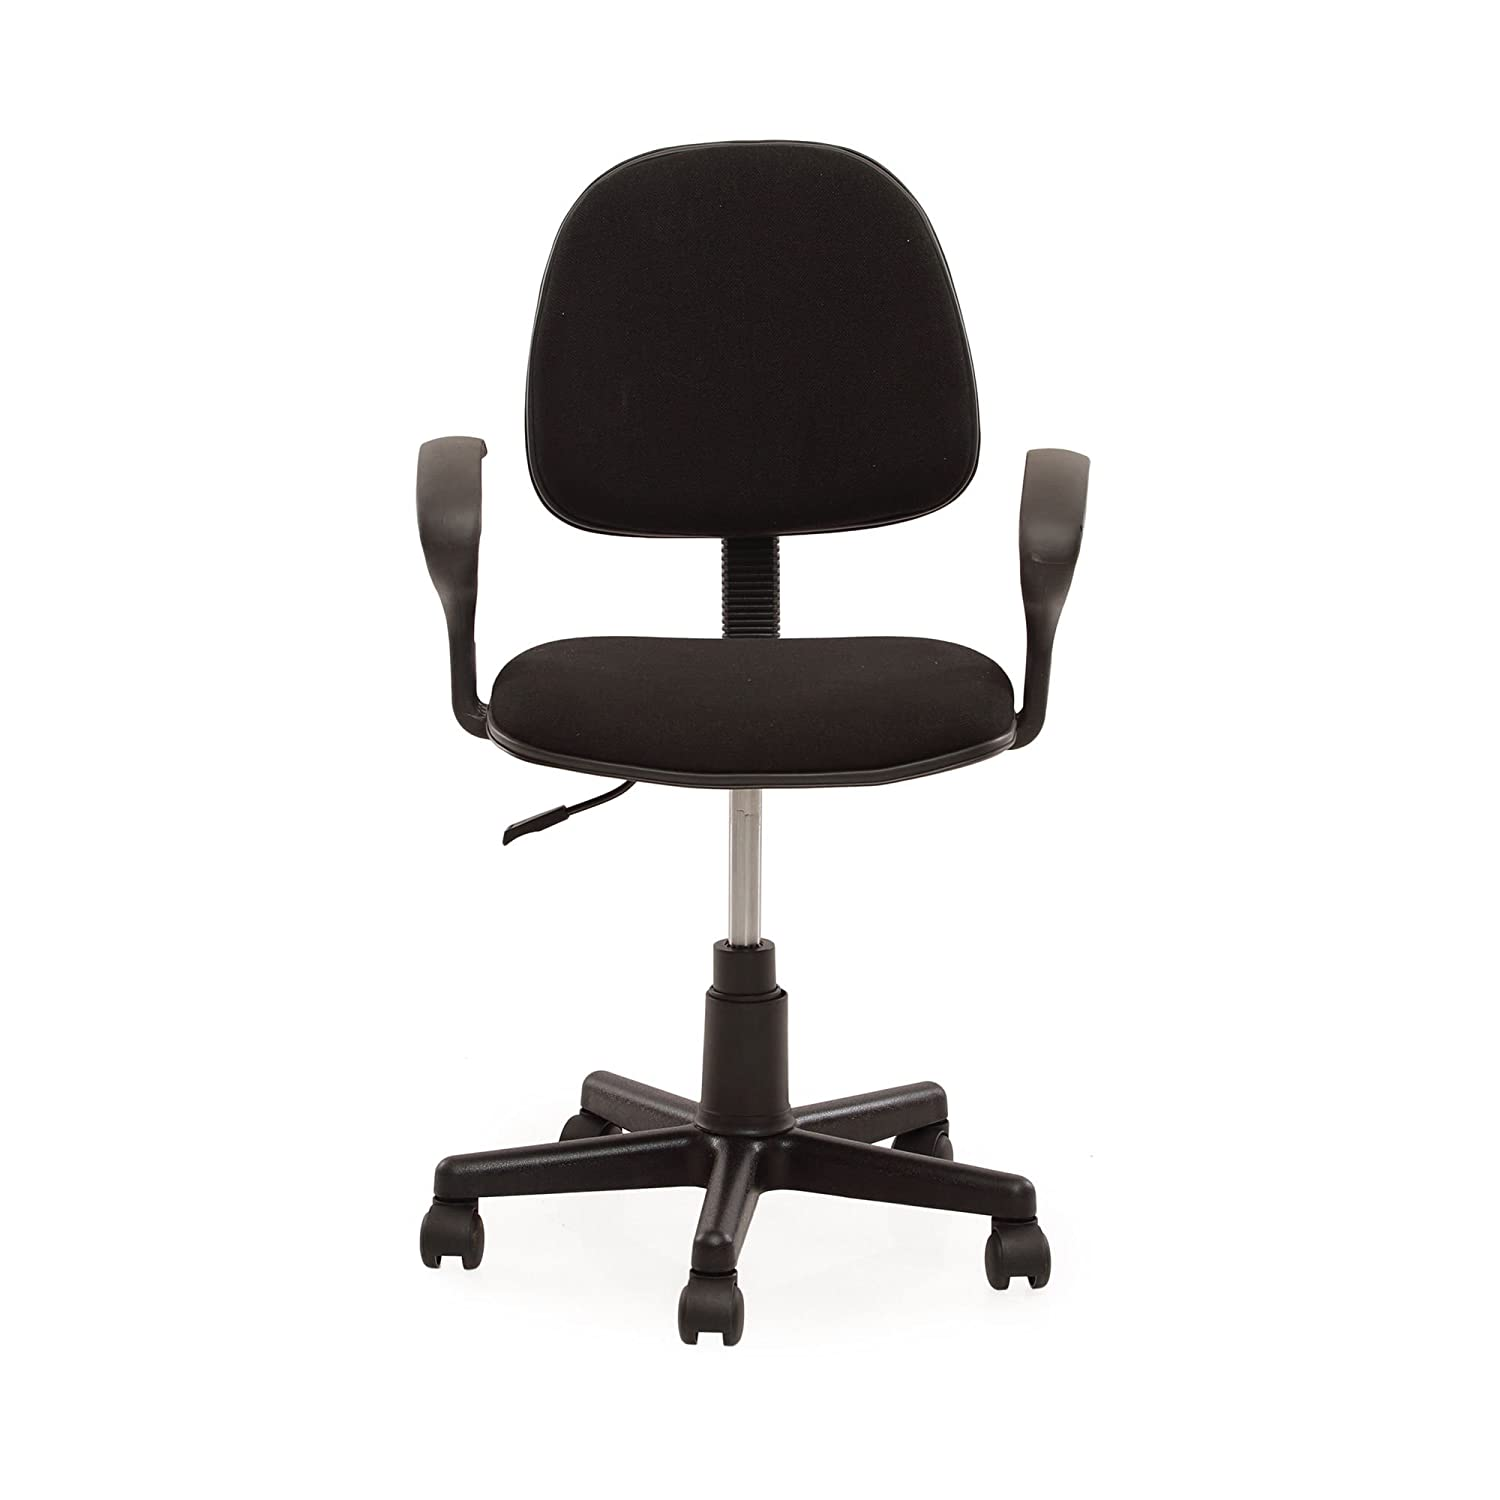 Nilkamal Venus puter Chair Black Amazon Home & Kitchen